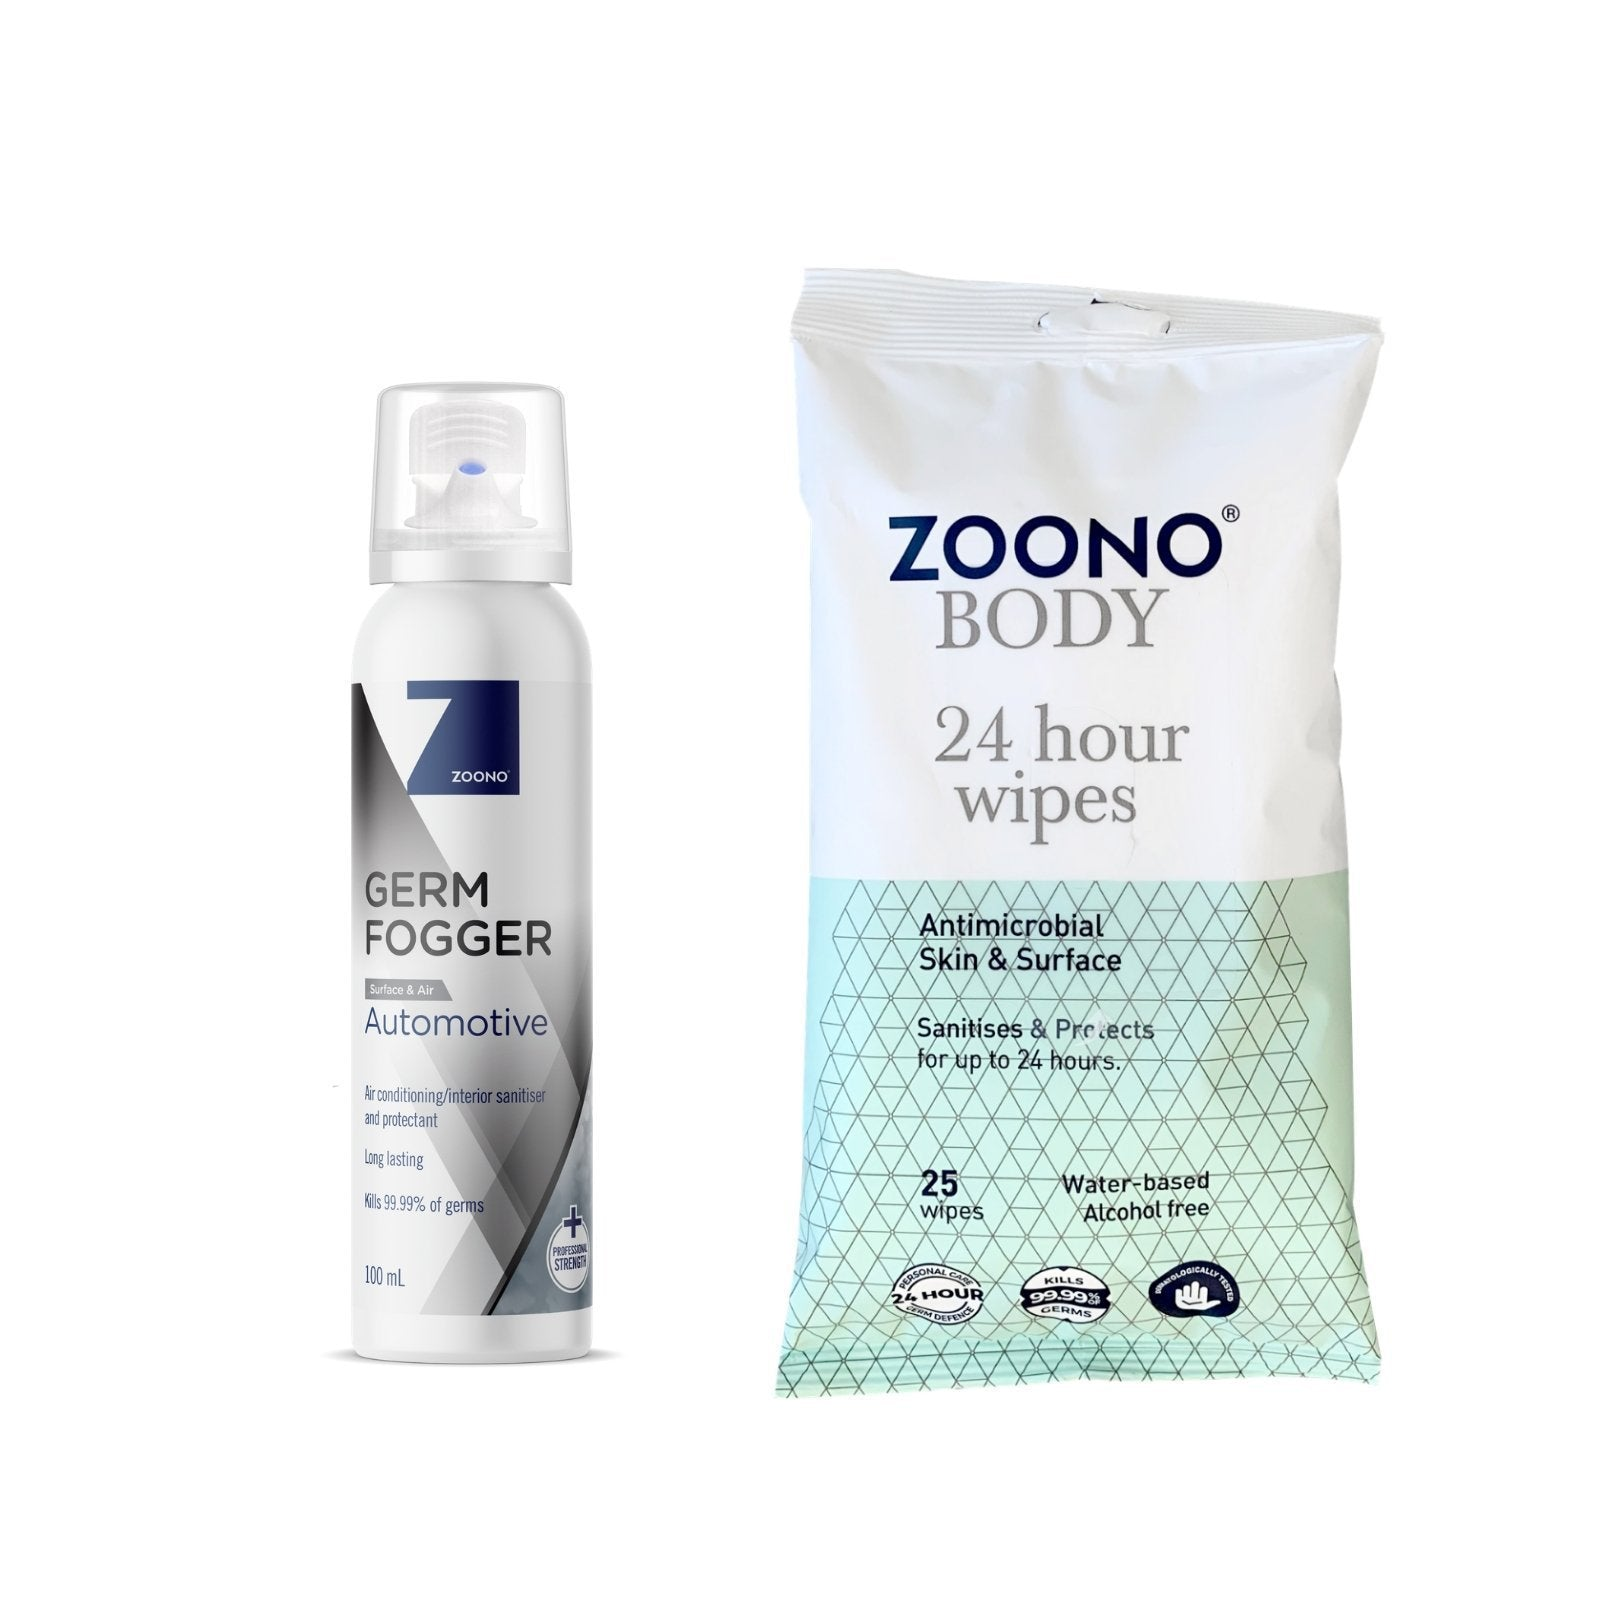 OneSpray Antibacterial Car Essentials powered by Zoono technology | 2 Items